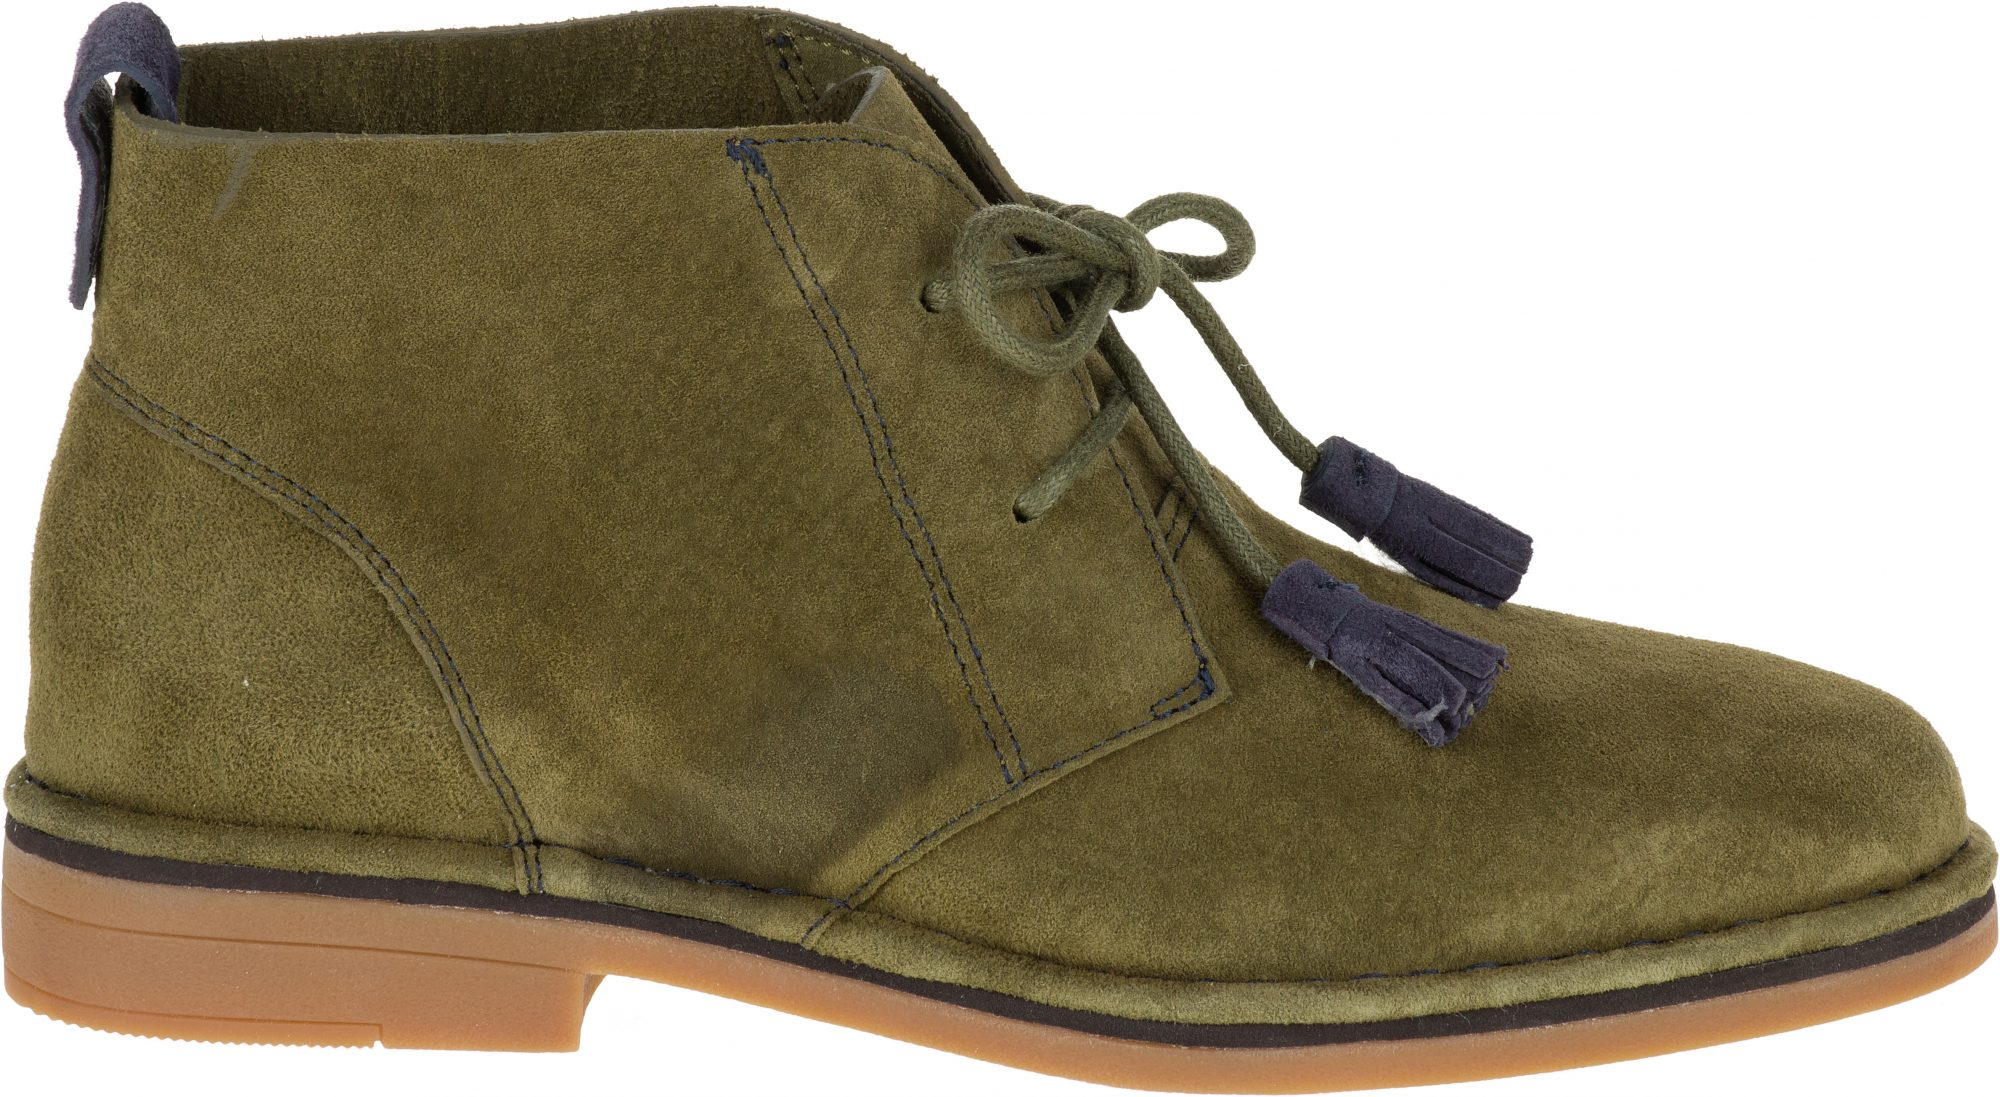 Hush Puppies Shoes